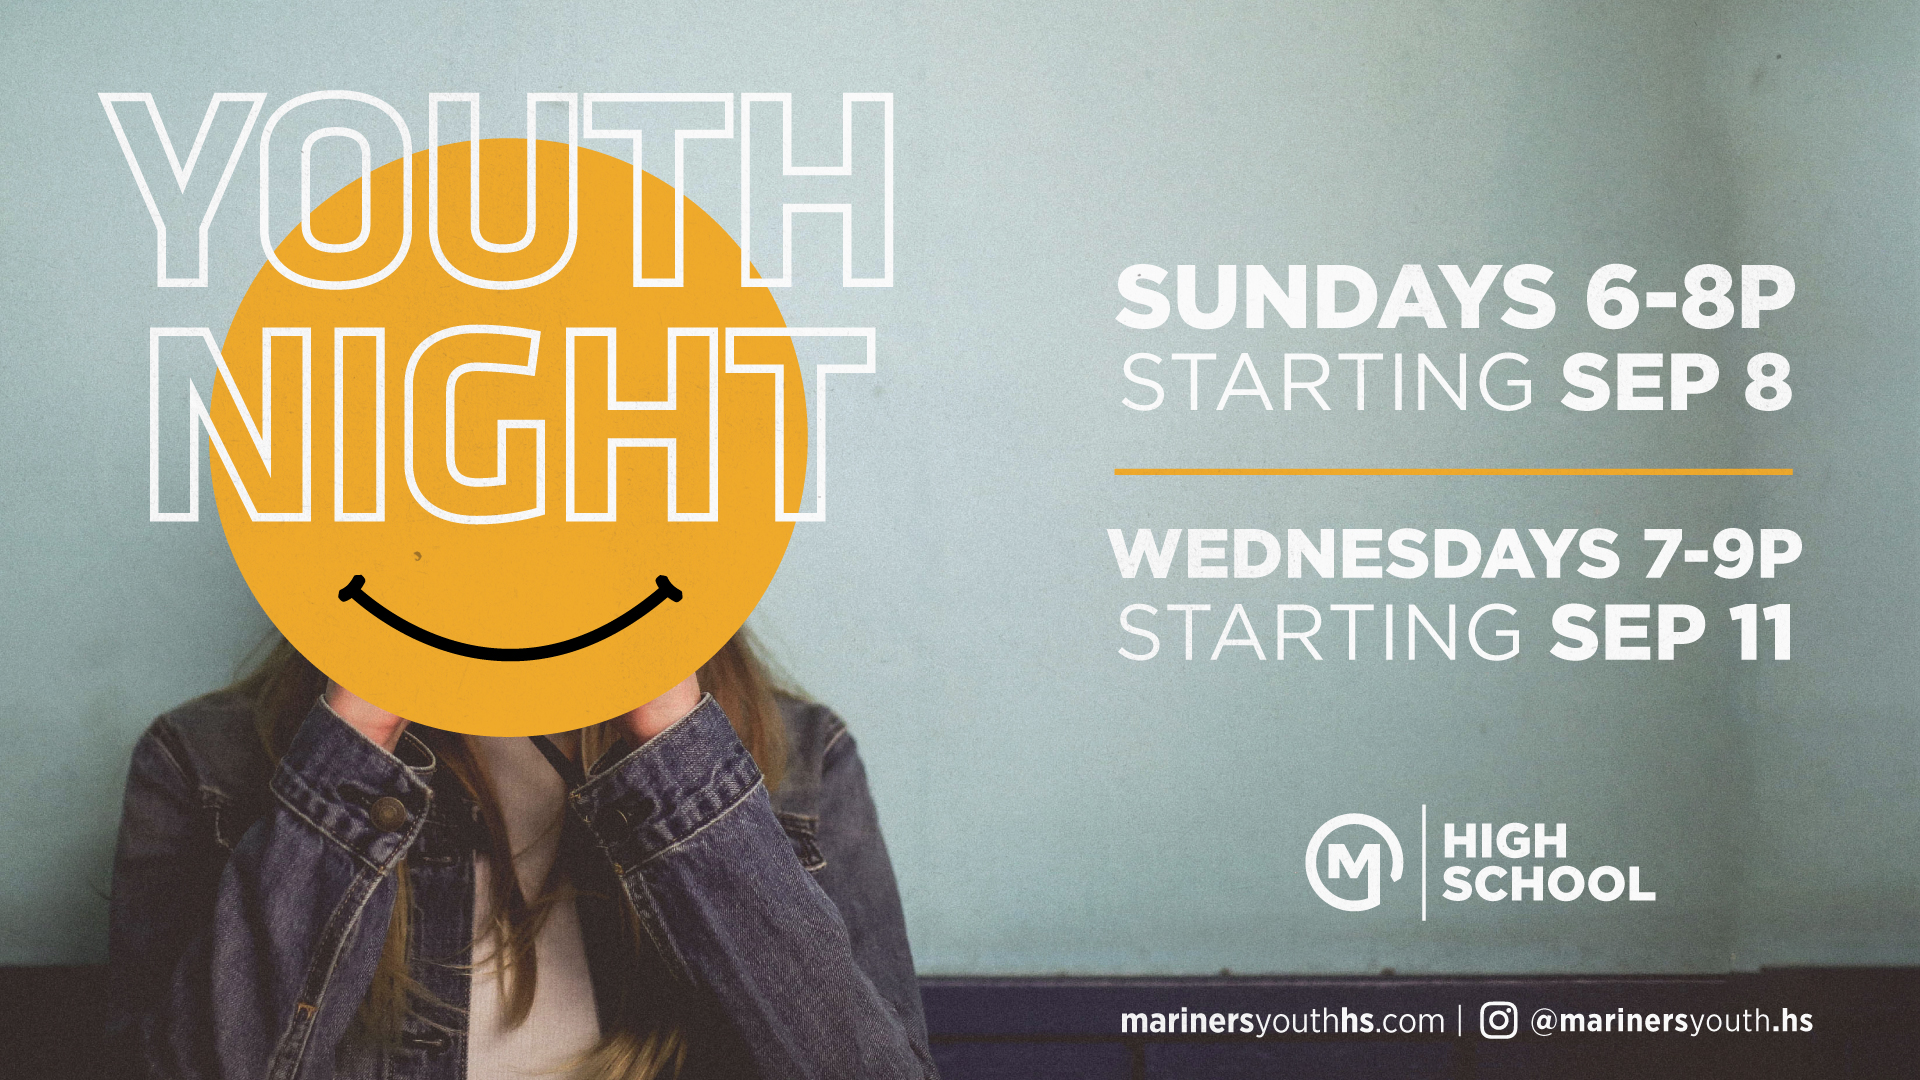 YouthNights-announcement-v2 (2).jpg